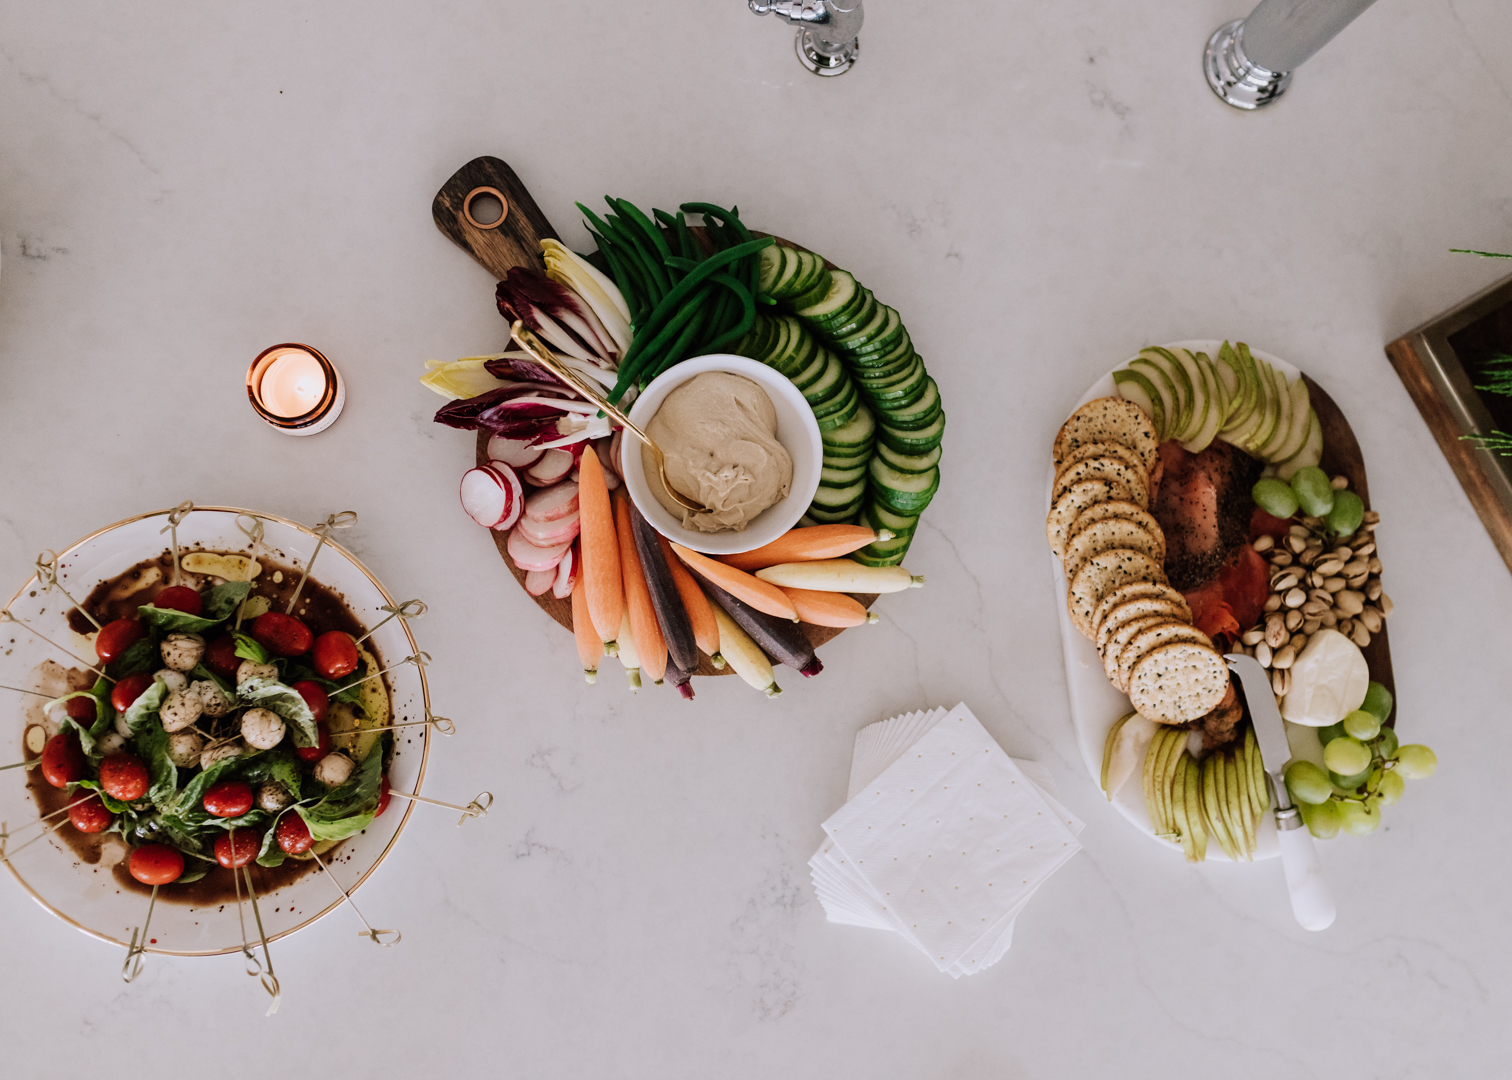 simple, healthy, tasty snacks for a holiday party | thelovedesigneldife.com #holidayparty #appetizers #vegetarian #veggieplate